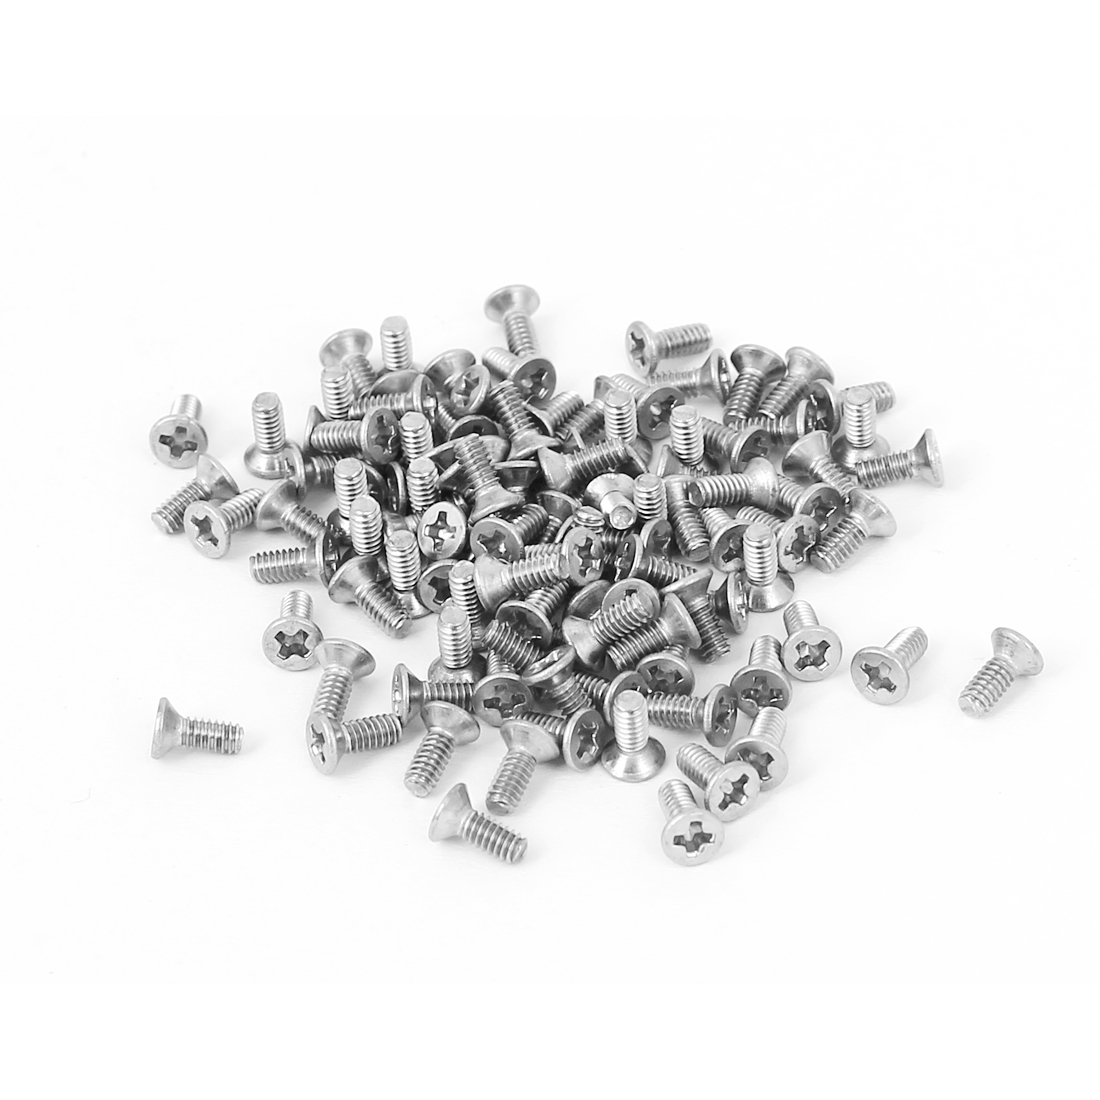 M2x5mm Stainless Steel Phillips Flat Countersunk Head Screws 100pcs